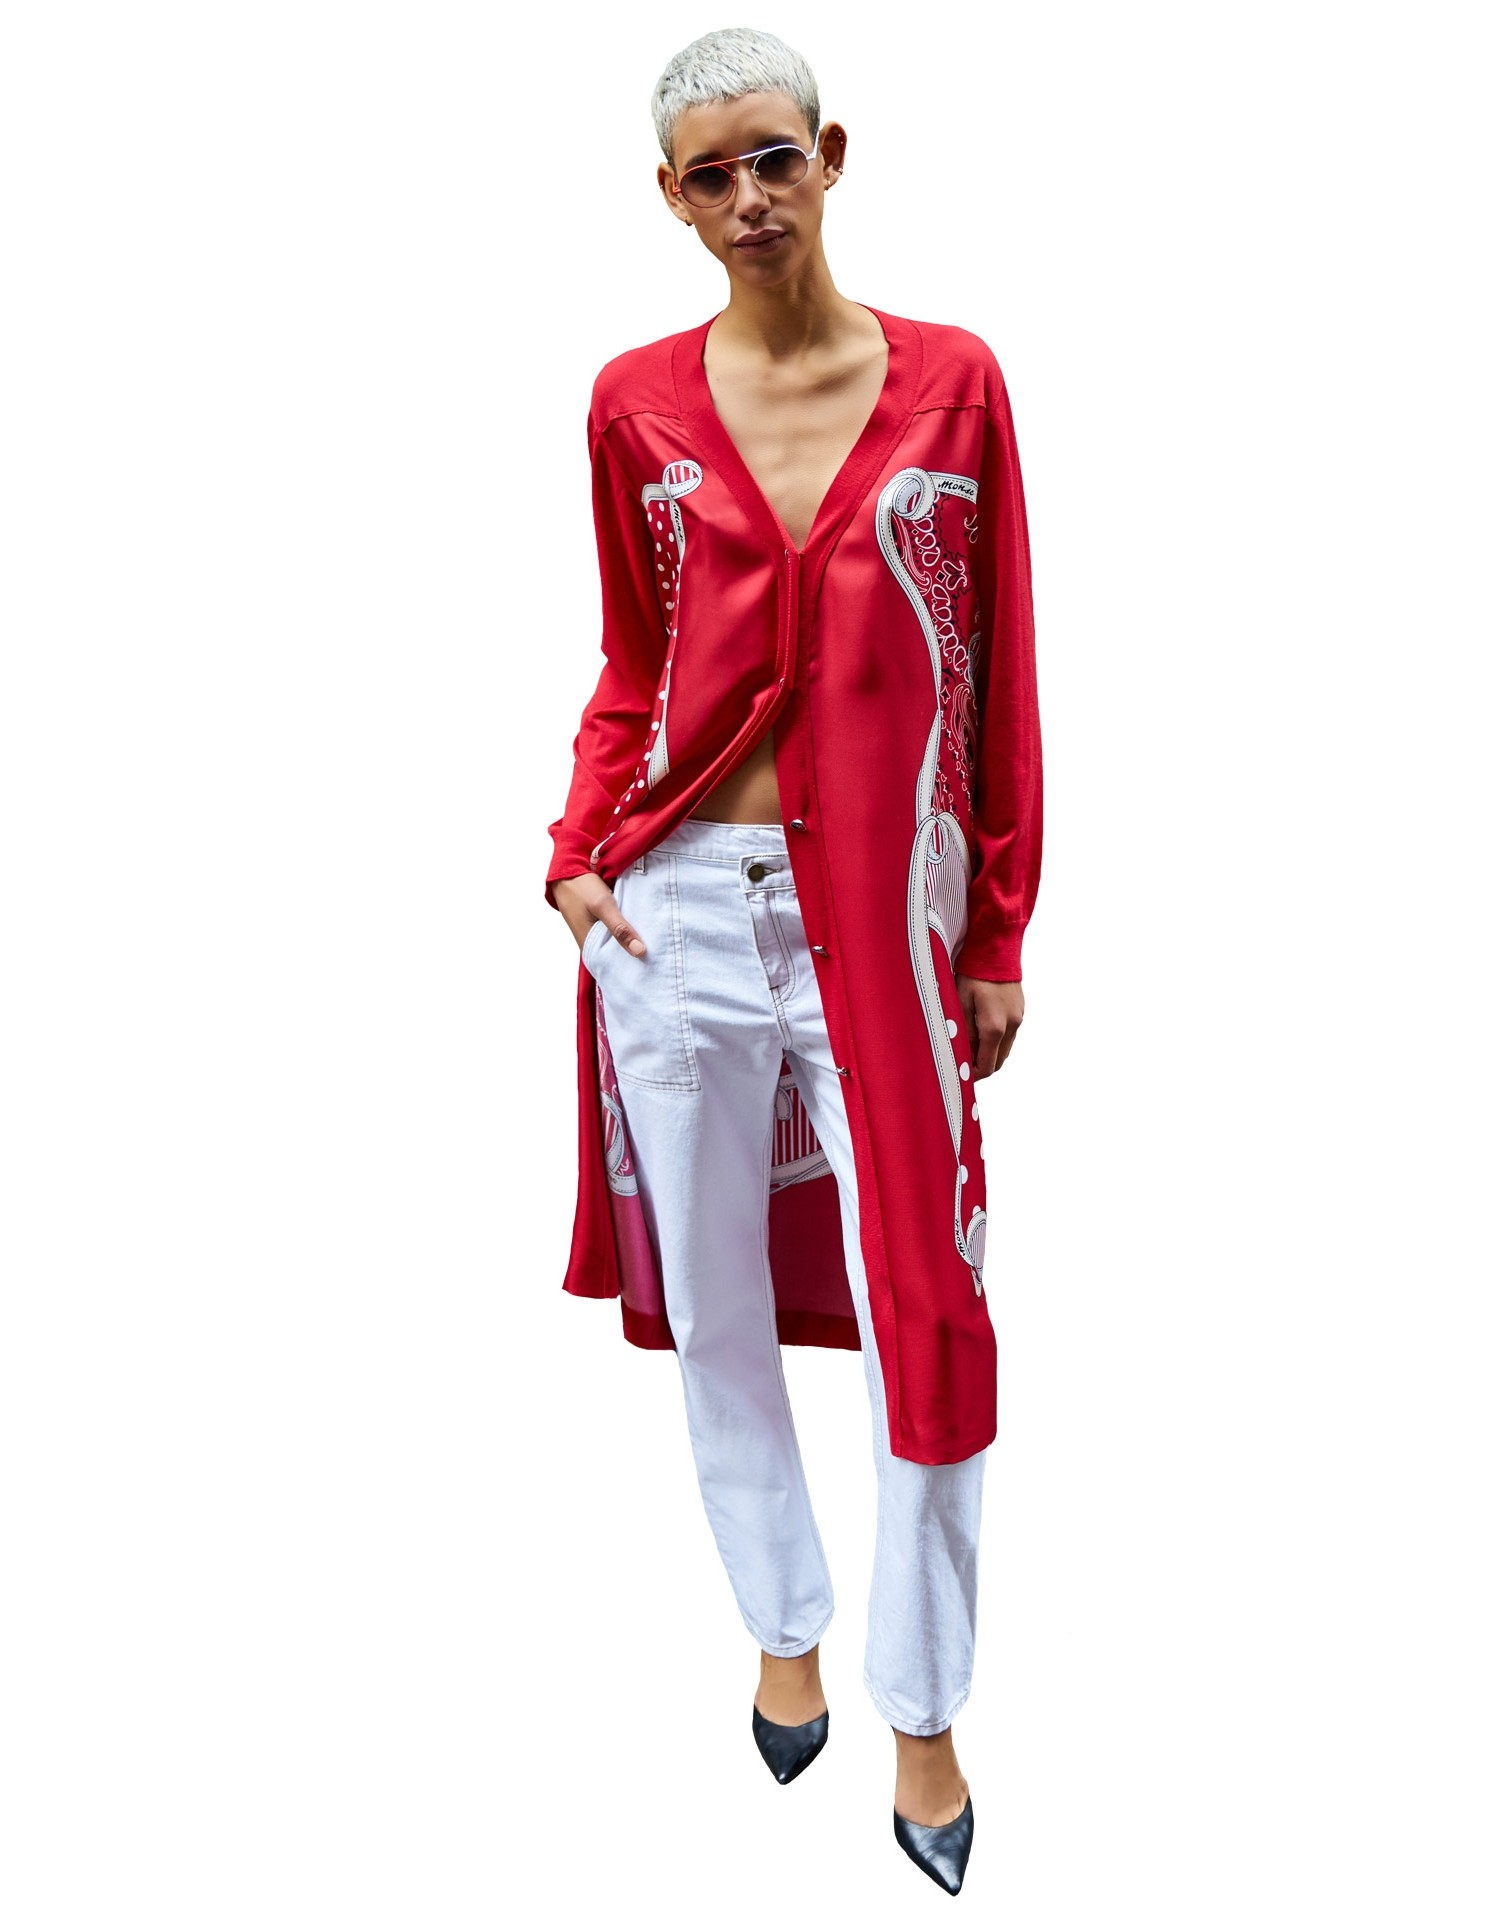 MONSE Pluto Bandana Cardigan in Red on Model Full Front